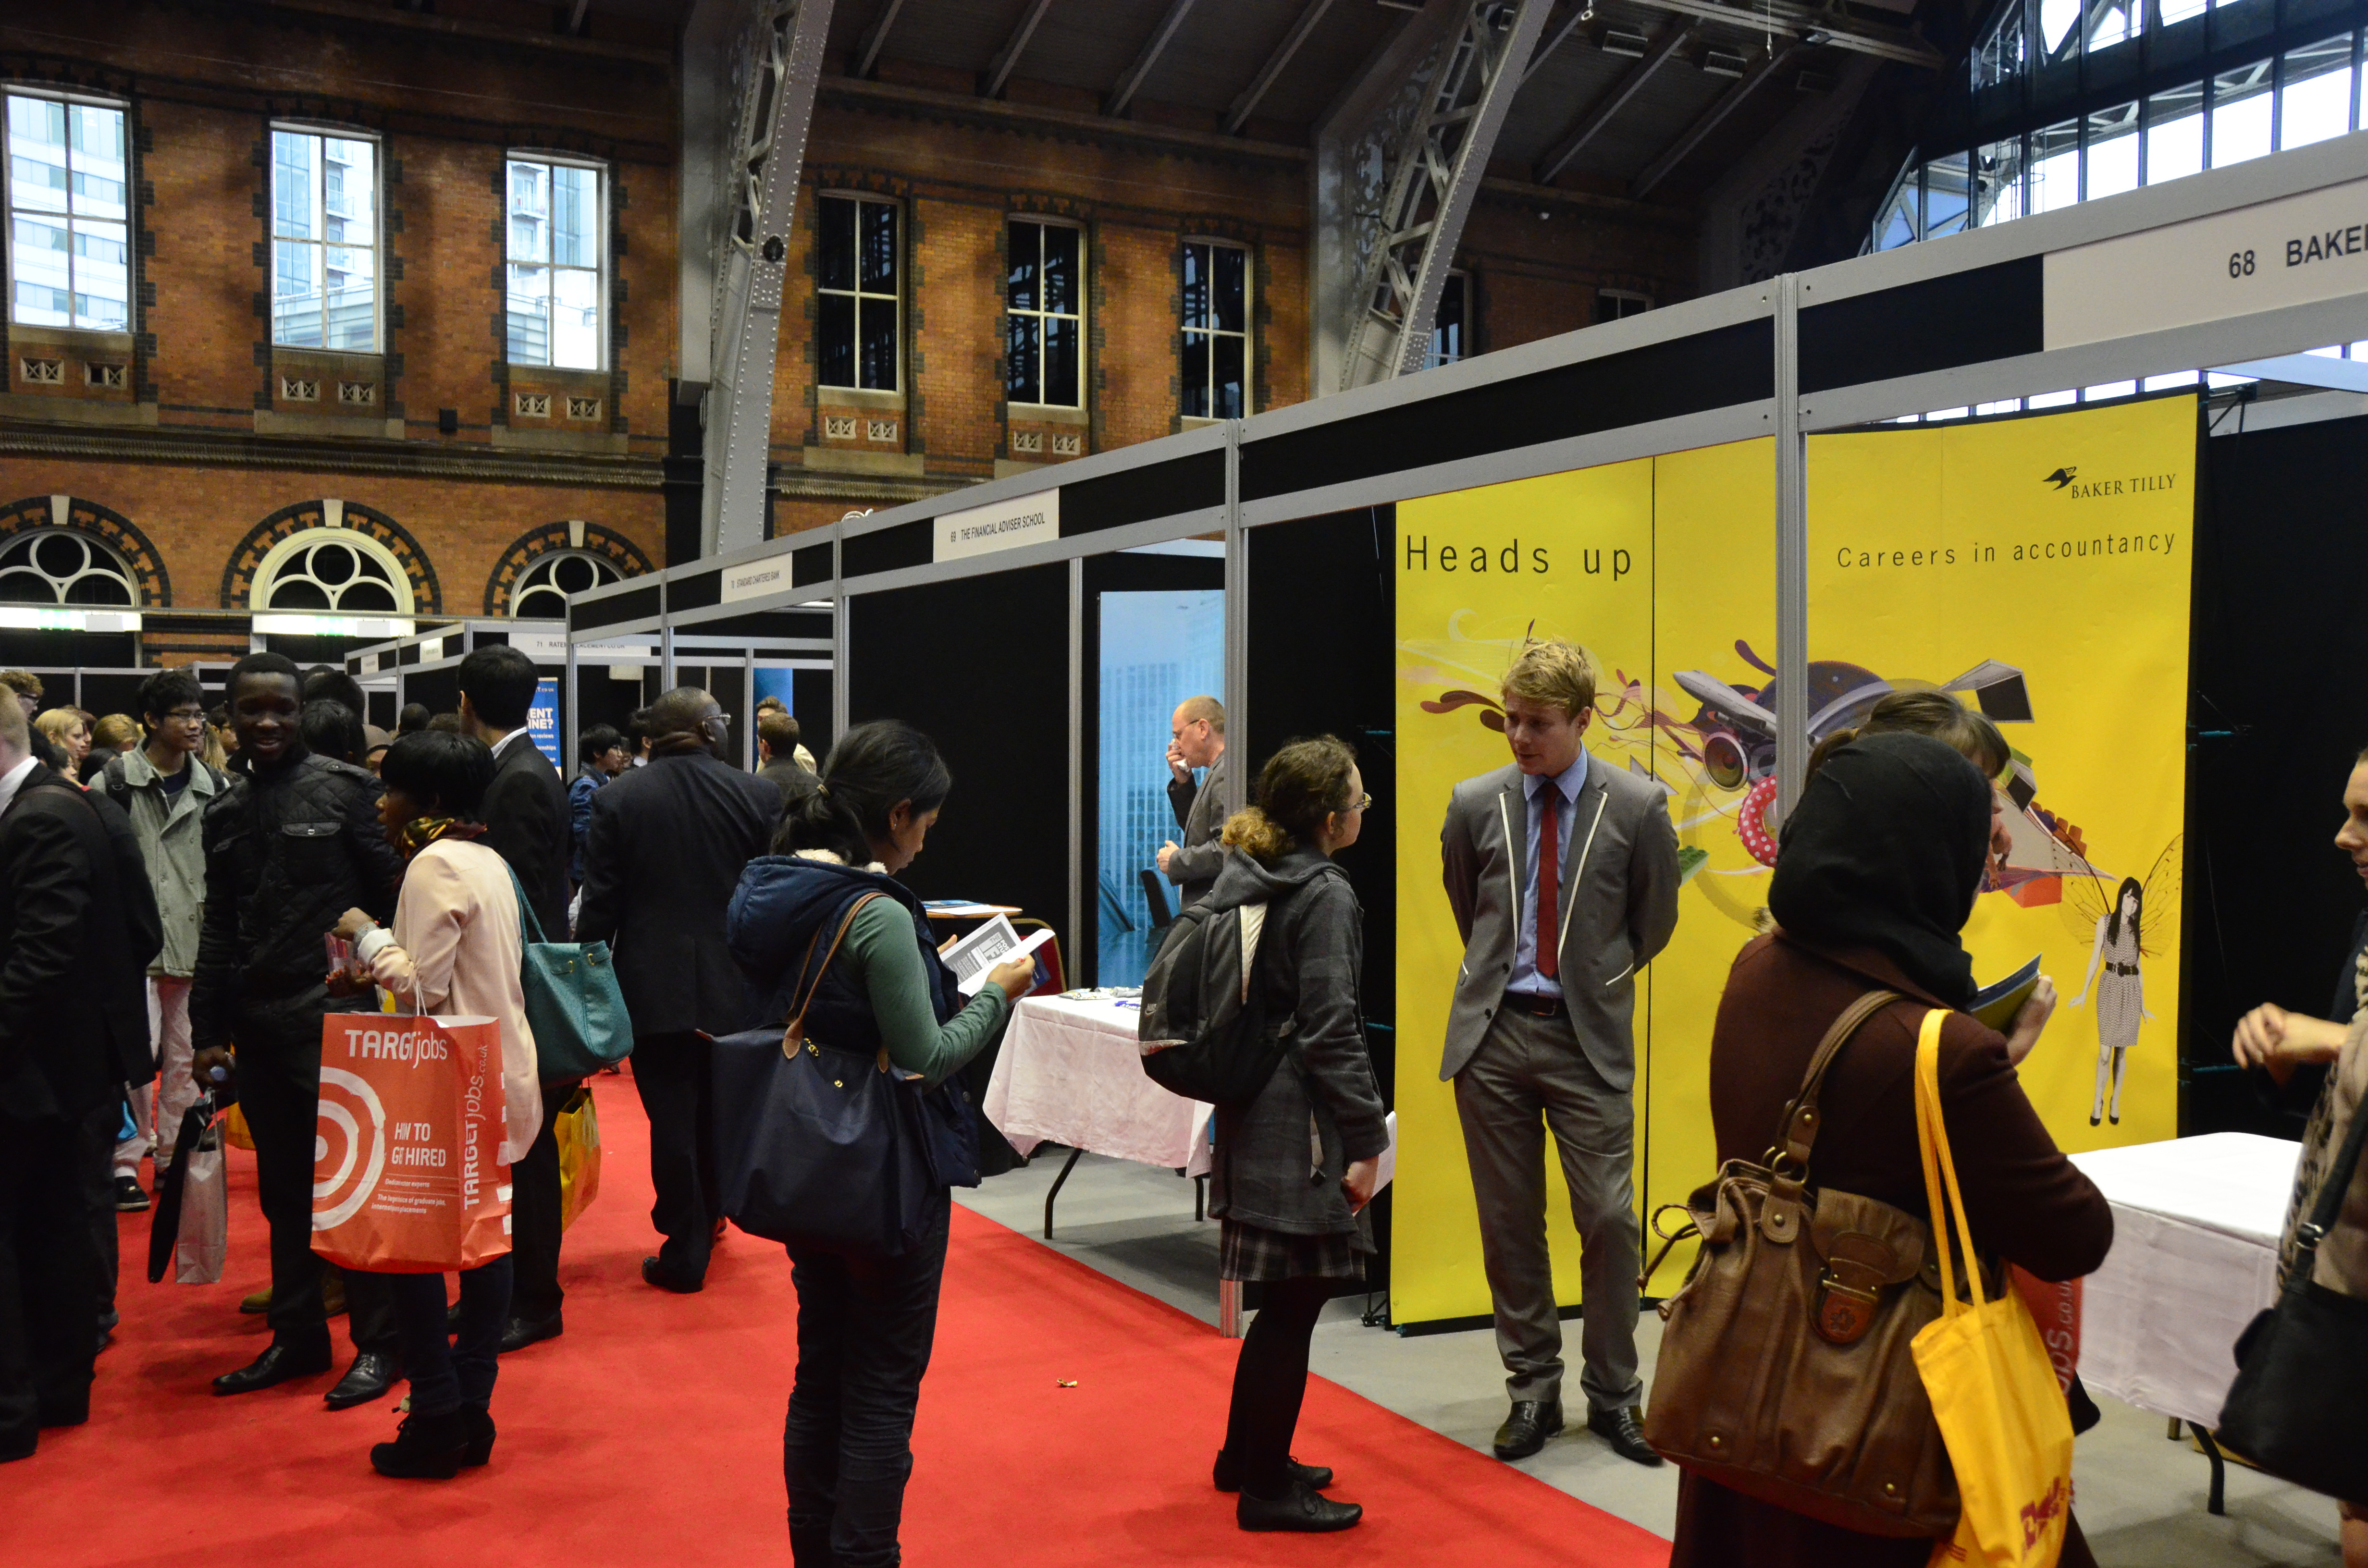 careers fair university of manchester careers blog but there s plenty to gain from coming along to one of our upcoming fairs whatever your